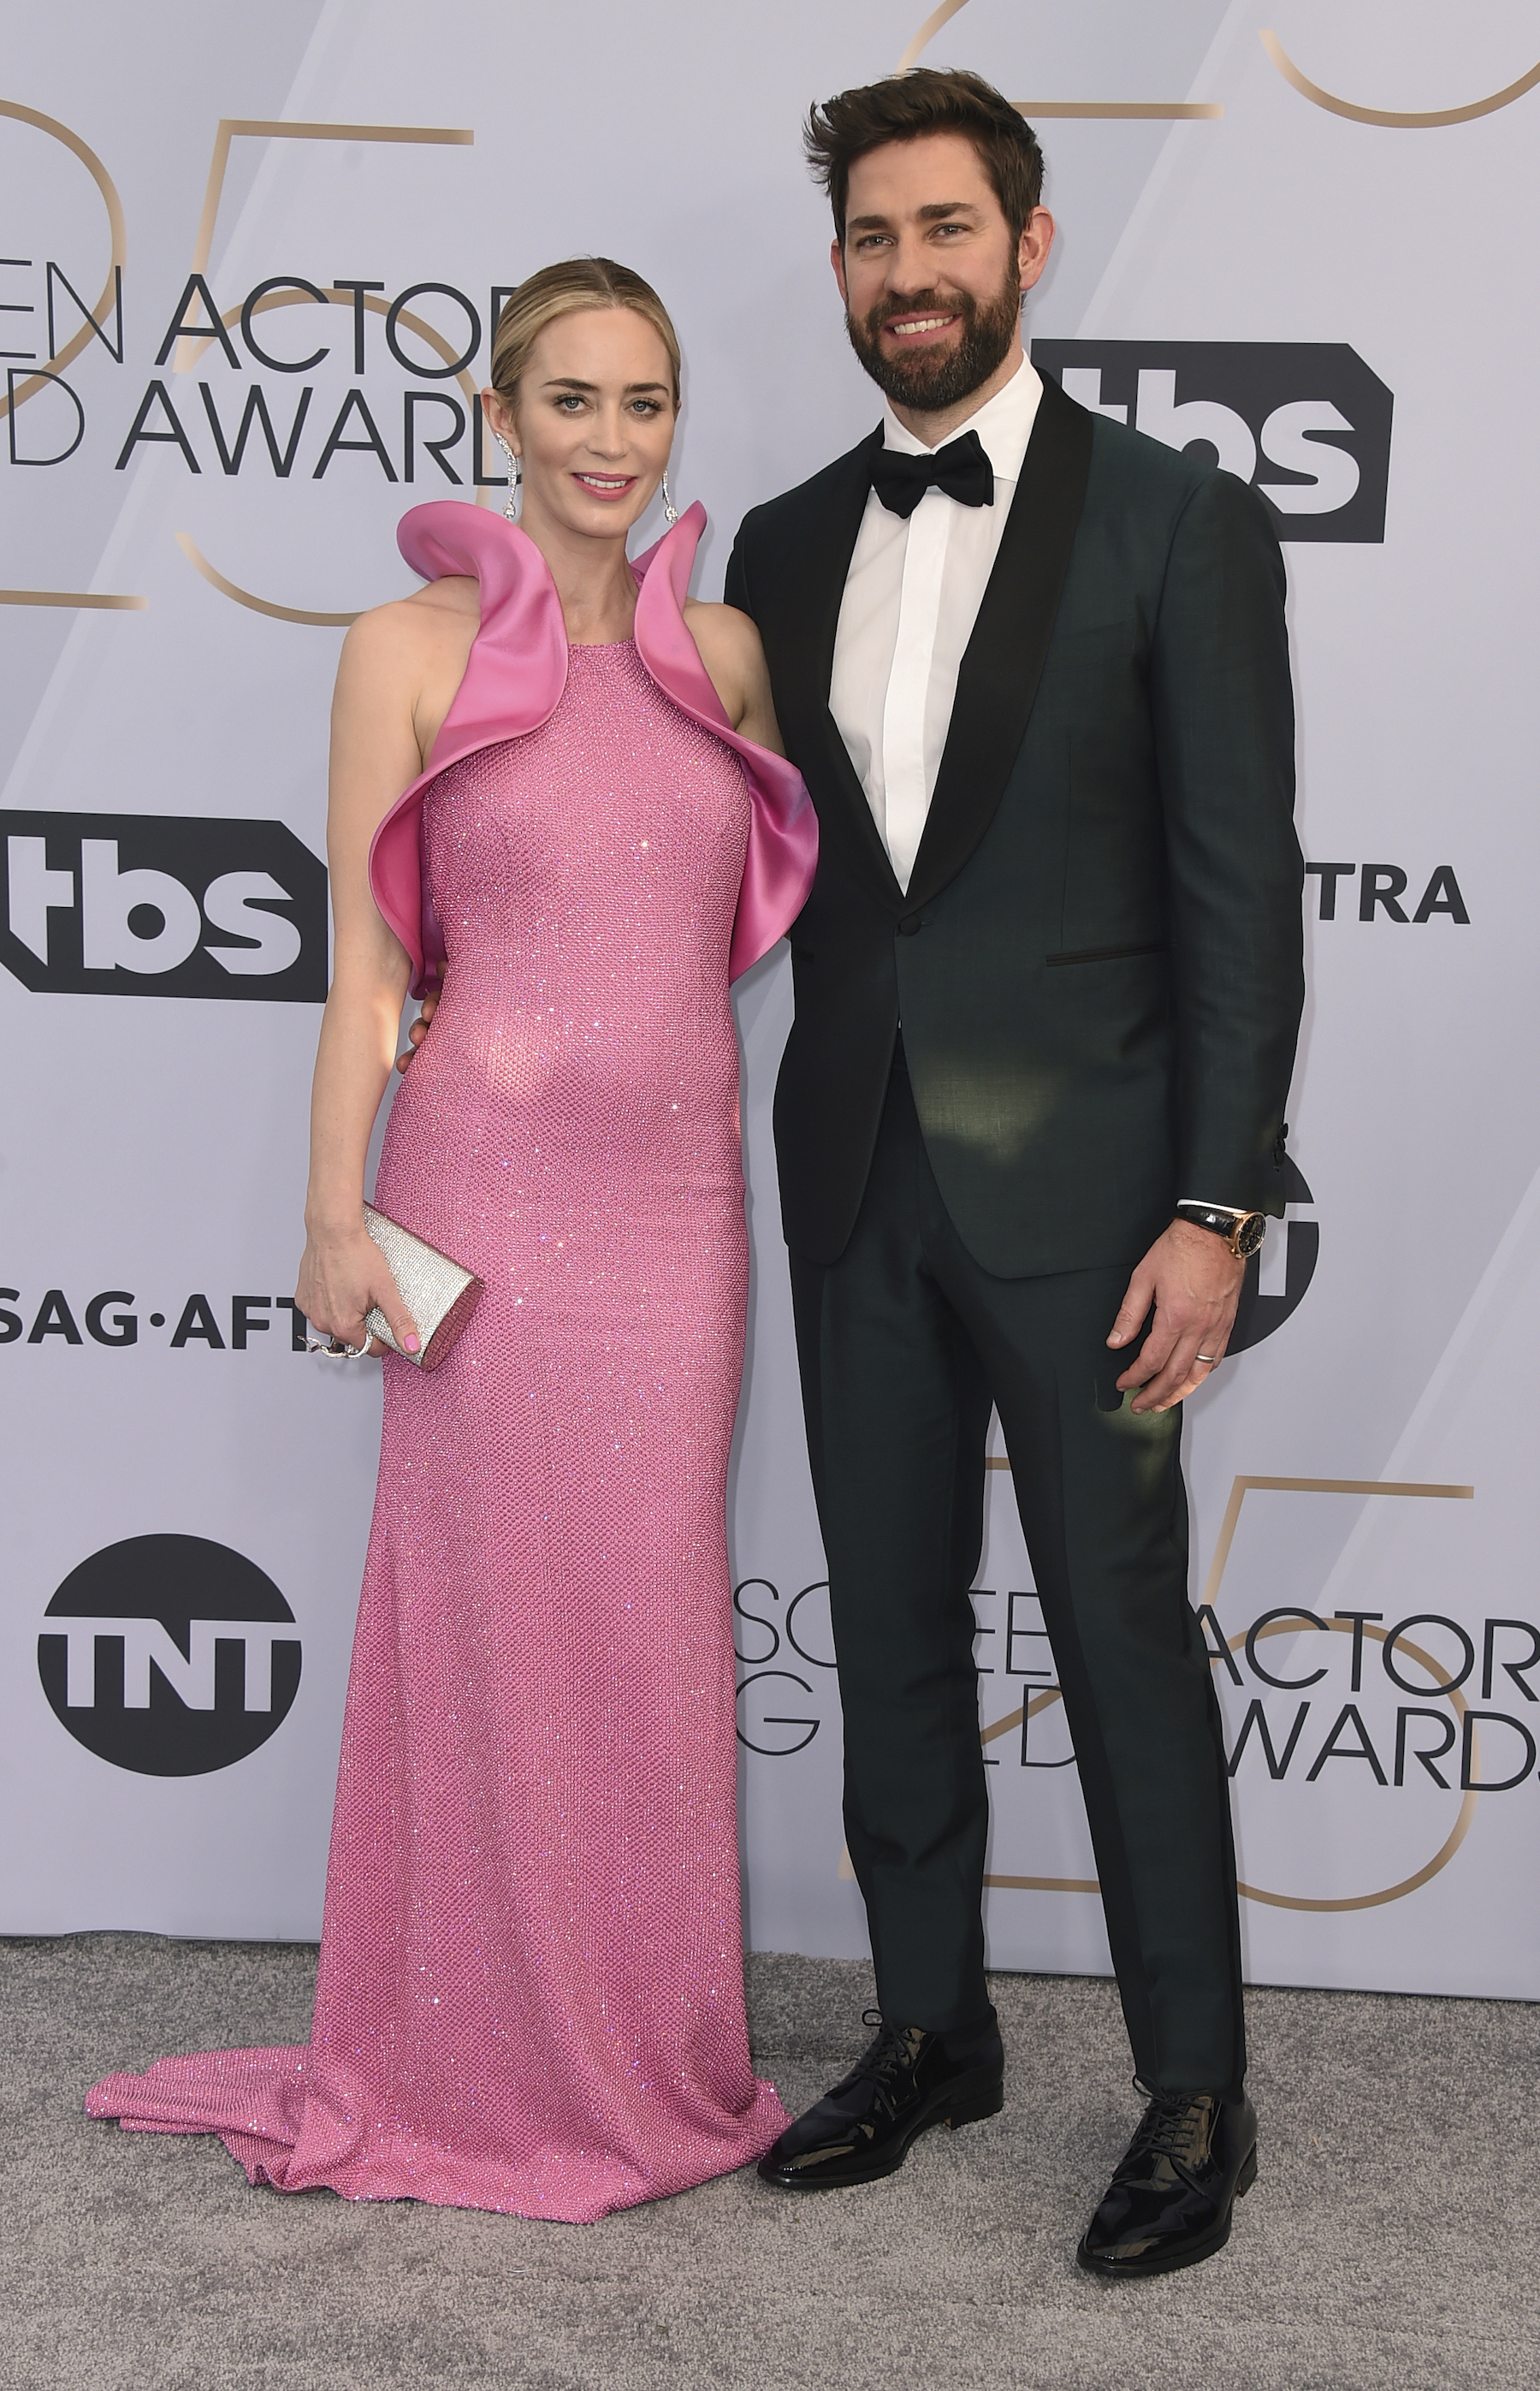 <div class='meta'><div class='origin-logo' data-origin='AP'></div><span class='caption-text' data-credit='Jordan Strauss/Invision/AP'>Emily Blunt, left, and John Krasinski arrive at the 25th annual Screen Actors Guild Awards at the Shrine Auditorium & Expo Hall on Sunday, Jan. 27, 2019, in Los Angeles.</span></div>